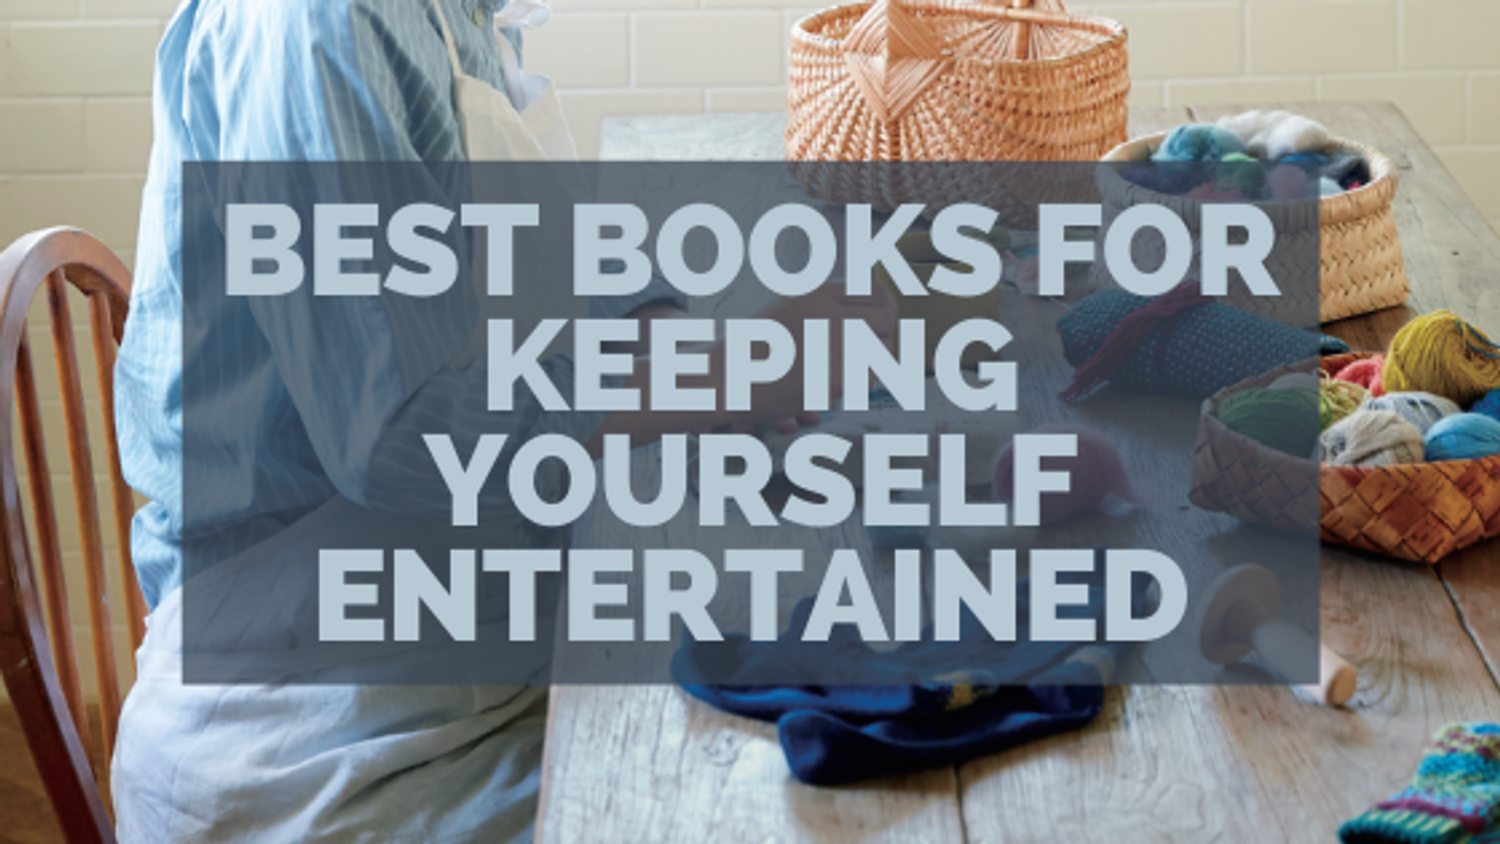 The Best Books for Keeping Yourself Entertained